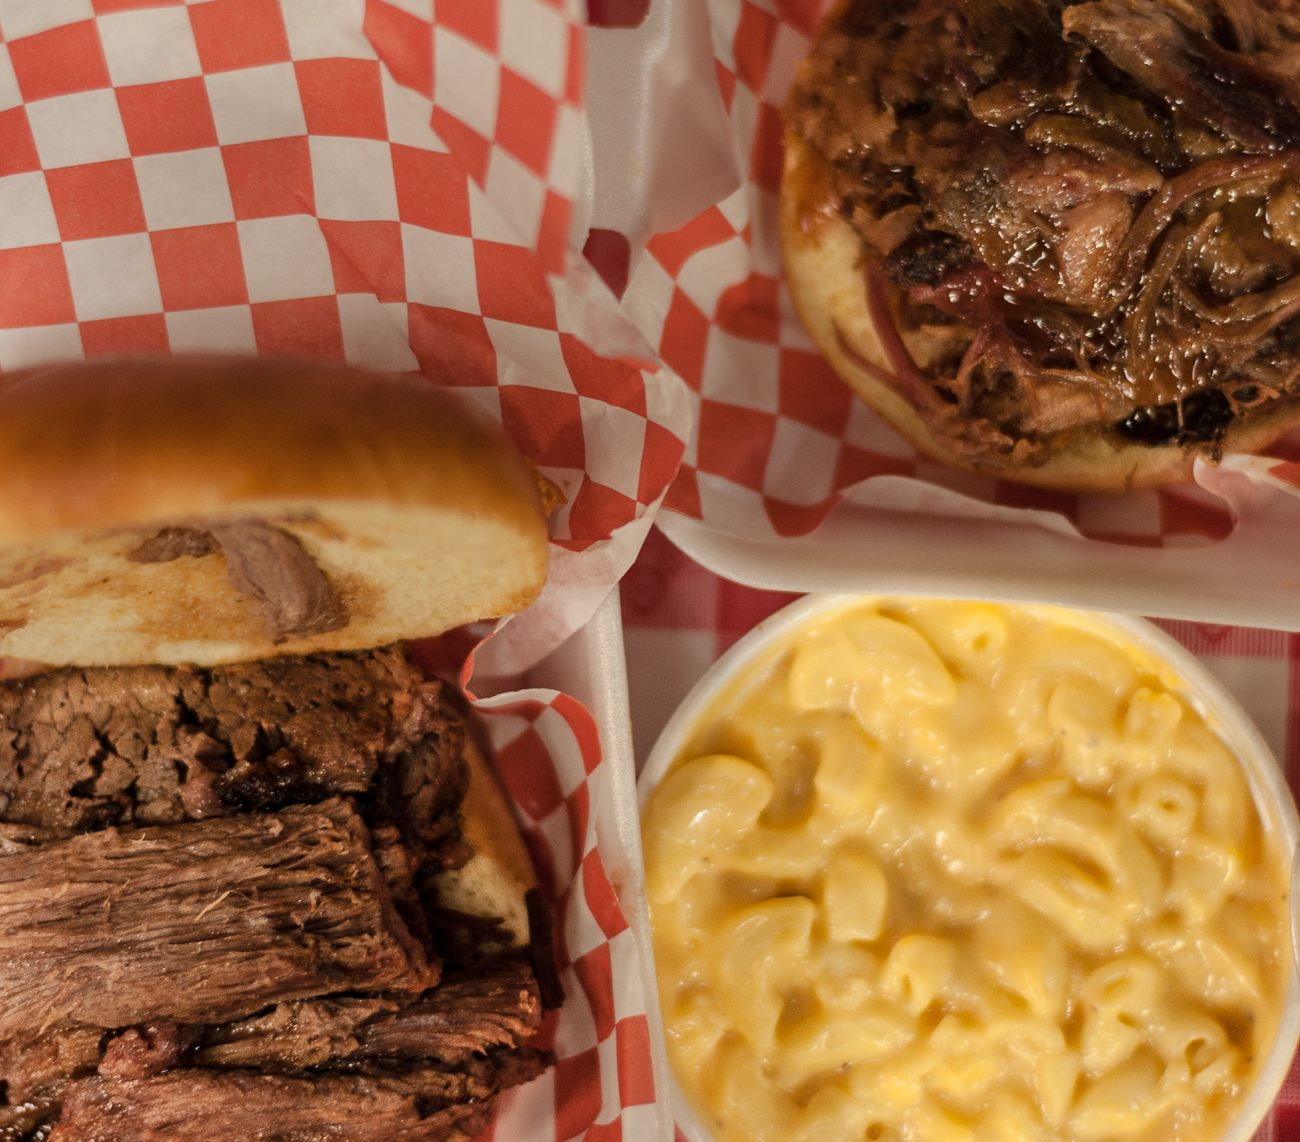 Full brisket sandwich, pulled pork sandwich, and mac & cheese{ }/ Image: Kellie Coleman // Published: 6.19.20